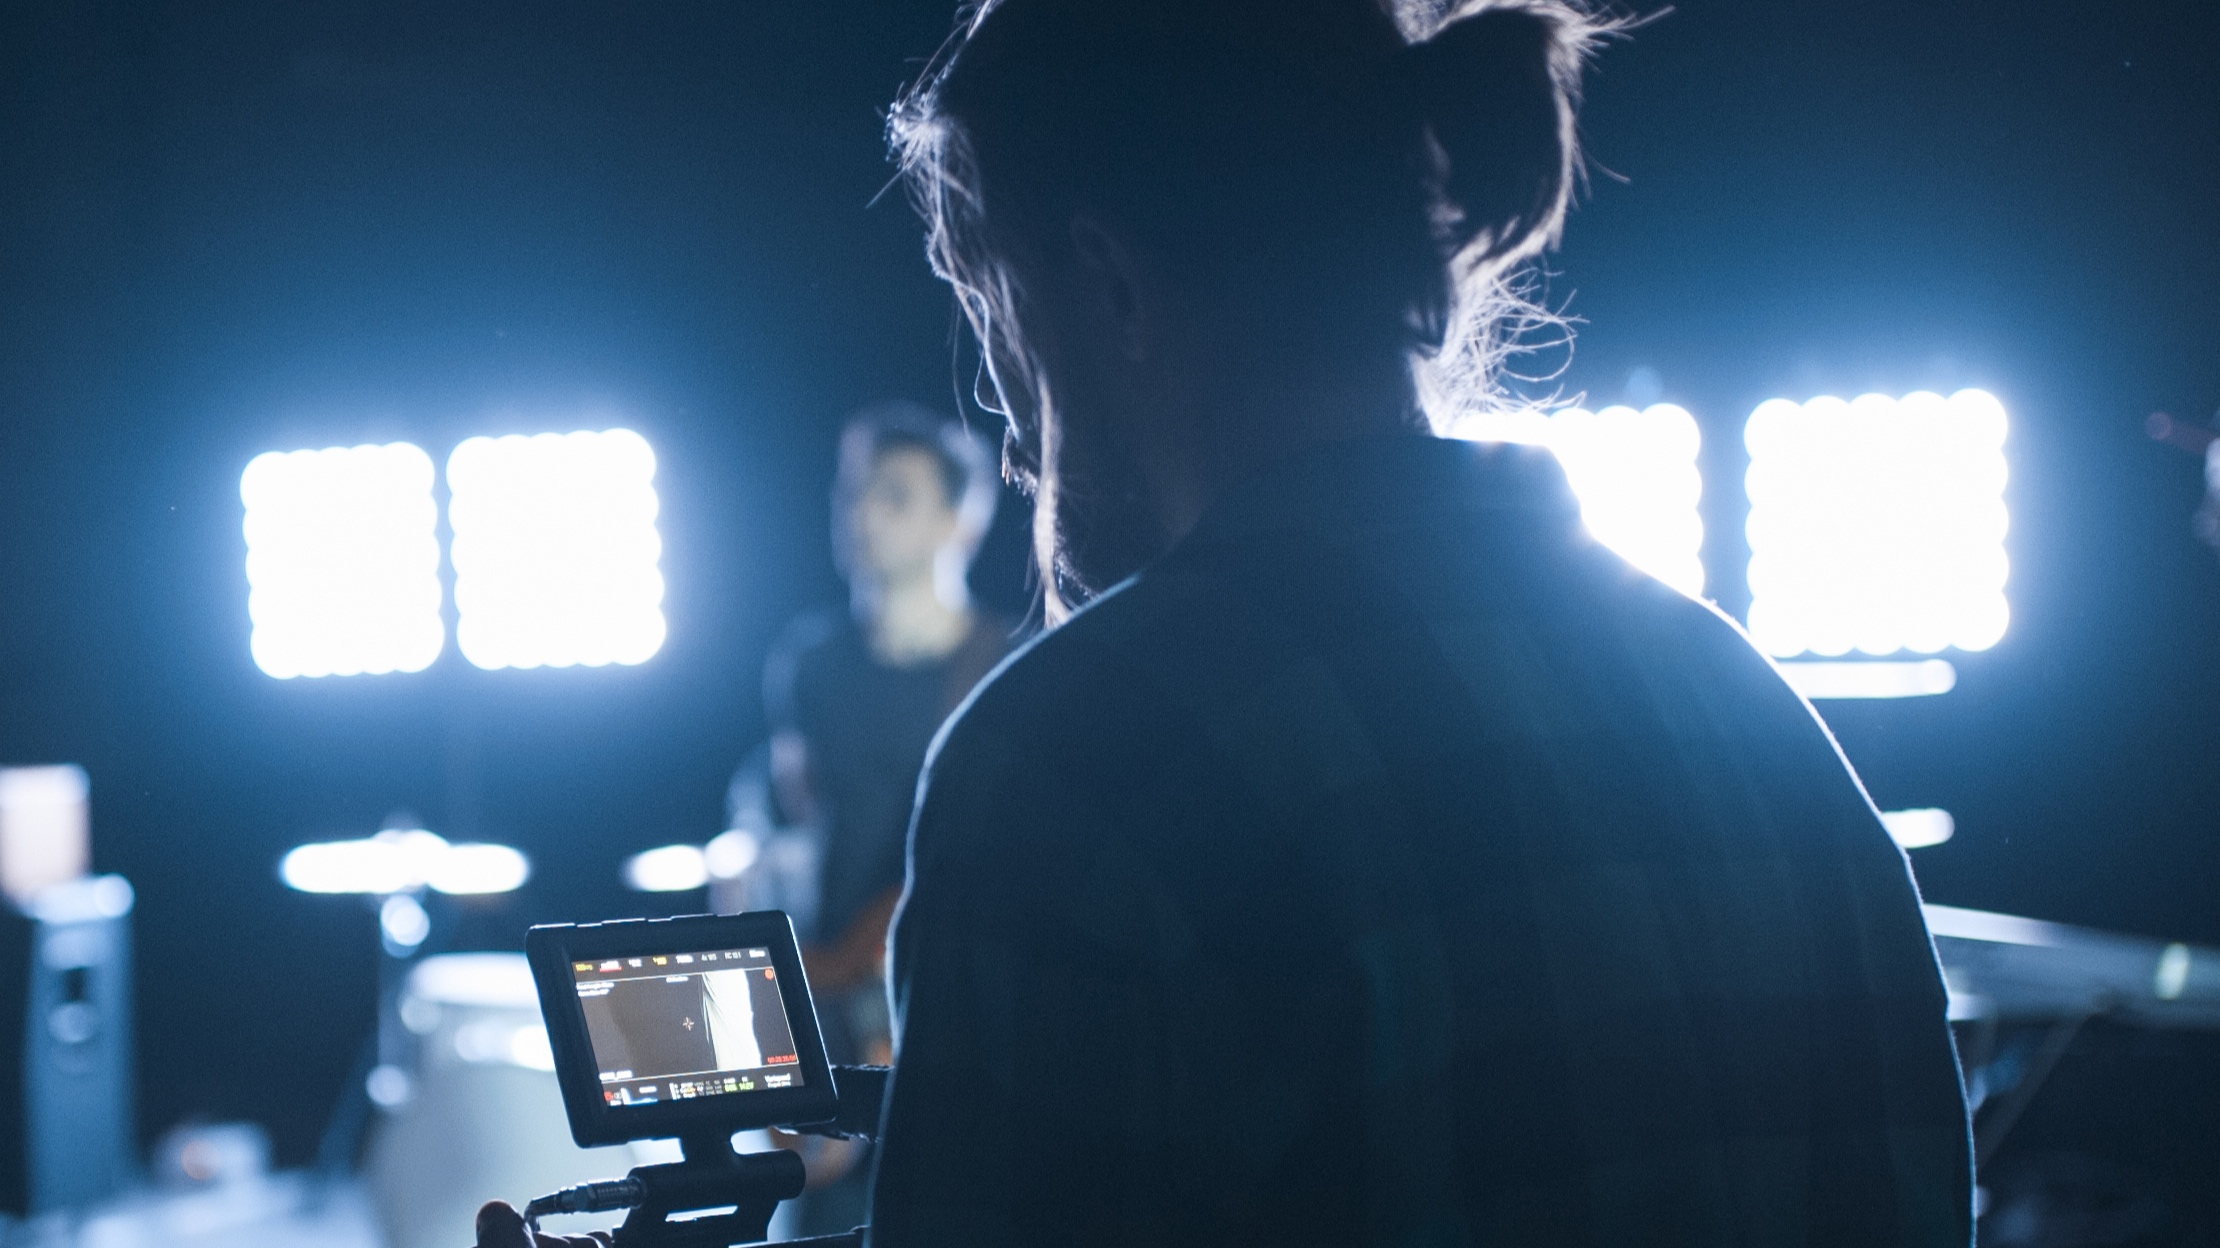 Specialist Workshops - A series of workshops focusing on different areas of filmmaking including Camera/Lighting, Editing, Make-up, Art Direction & Sound.